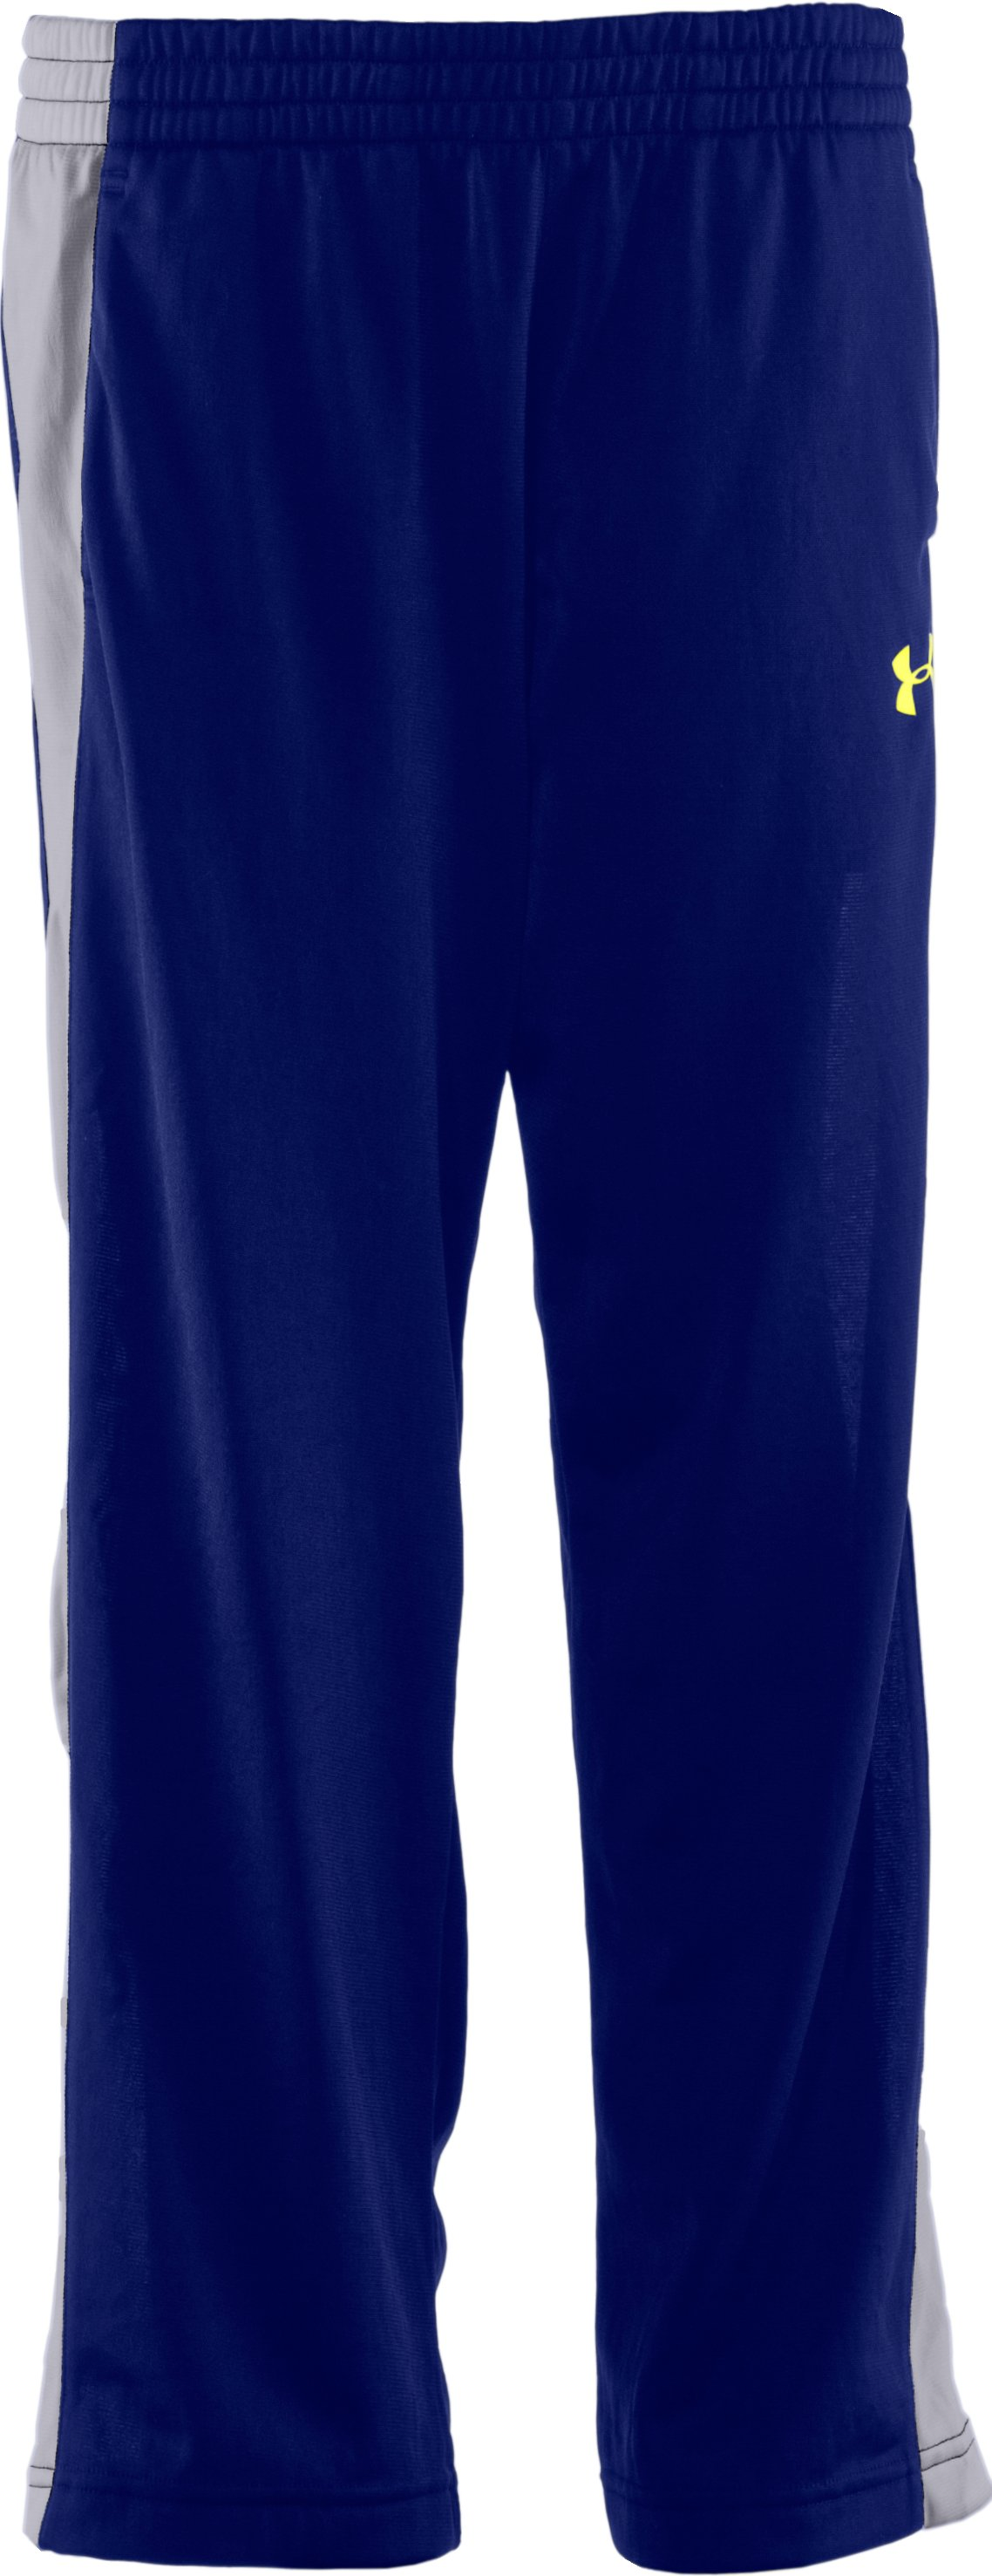 Boys' UA Brawler Knit Warm-Up Pants, Royal, zoomed image